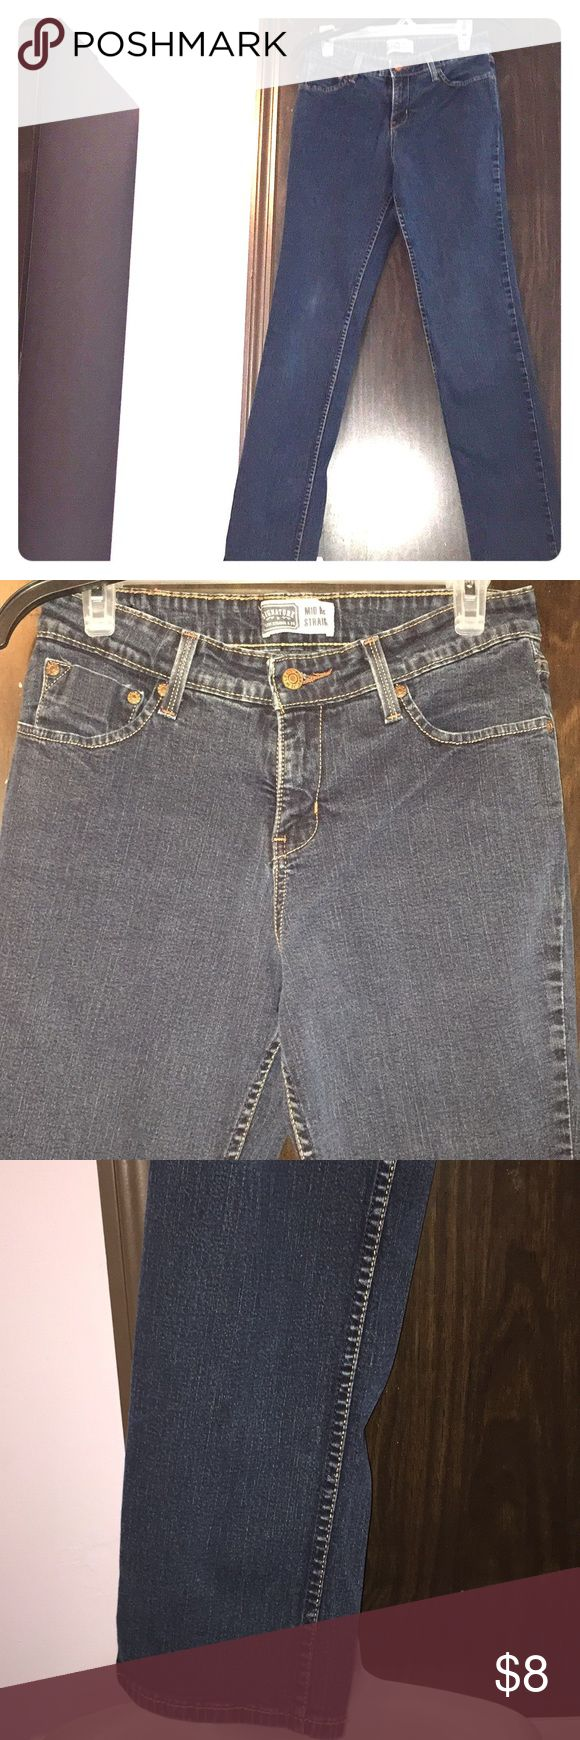 "Signature Levi Strauss straight jeans. Size 8 long Signature Levi Strauss mid rise straight jeans. Size 8 long. Worn, but in great condition. Length 42"". Inseam 32"". Fast shipping. Signature by Levi Strauss Jeans Straight Leg"